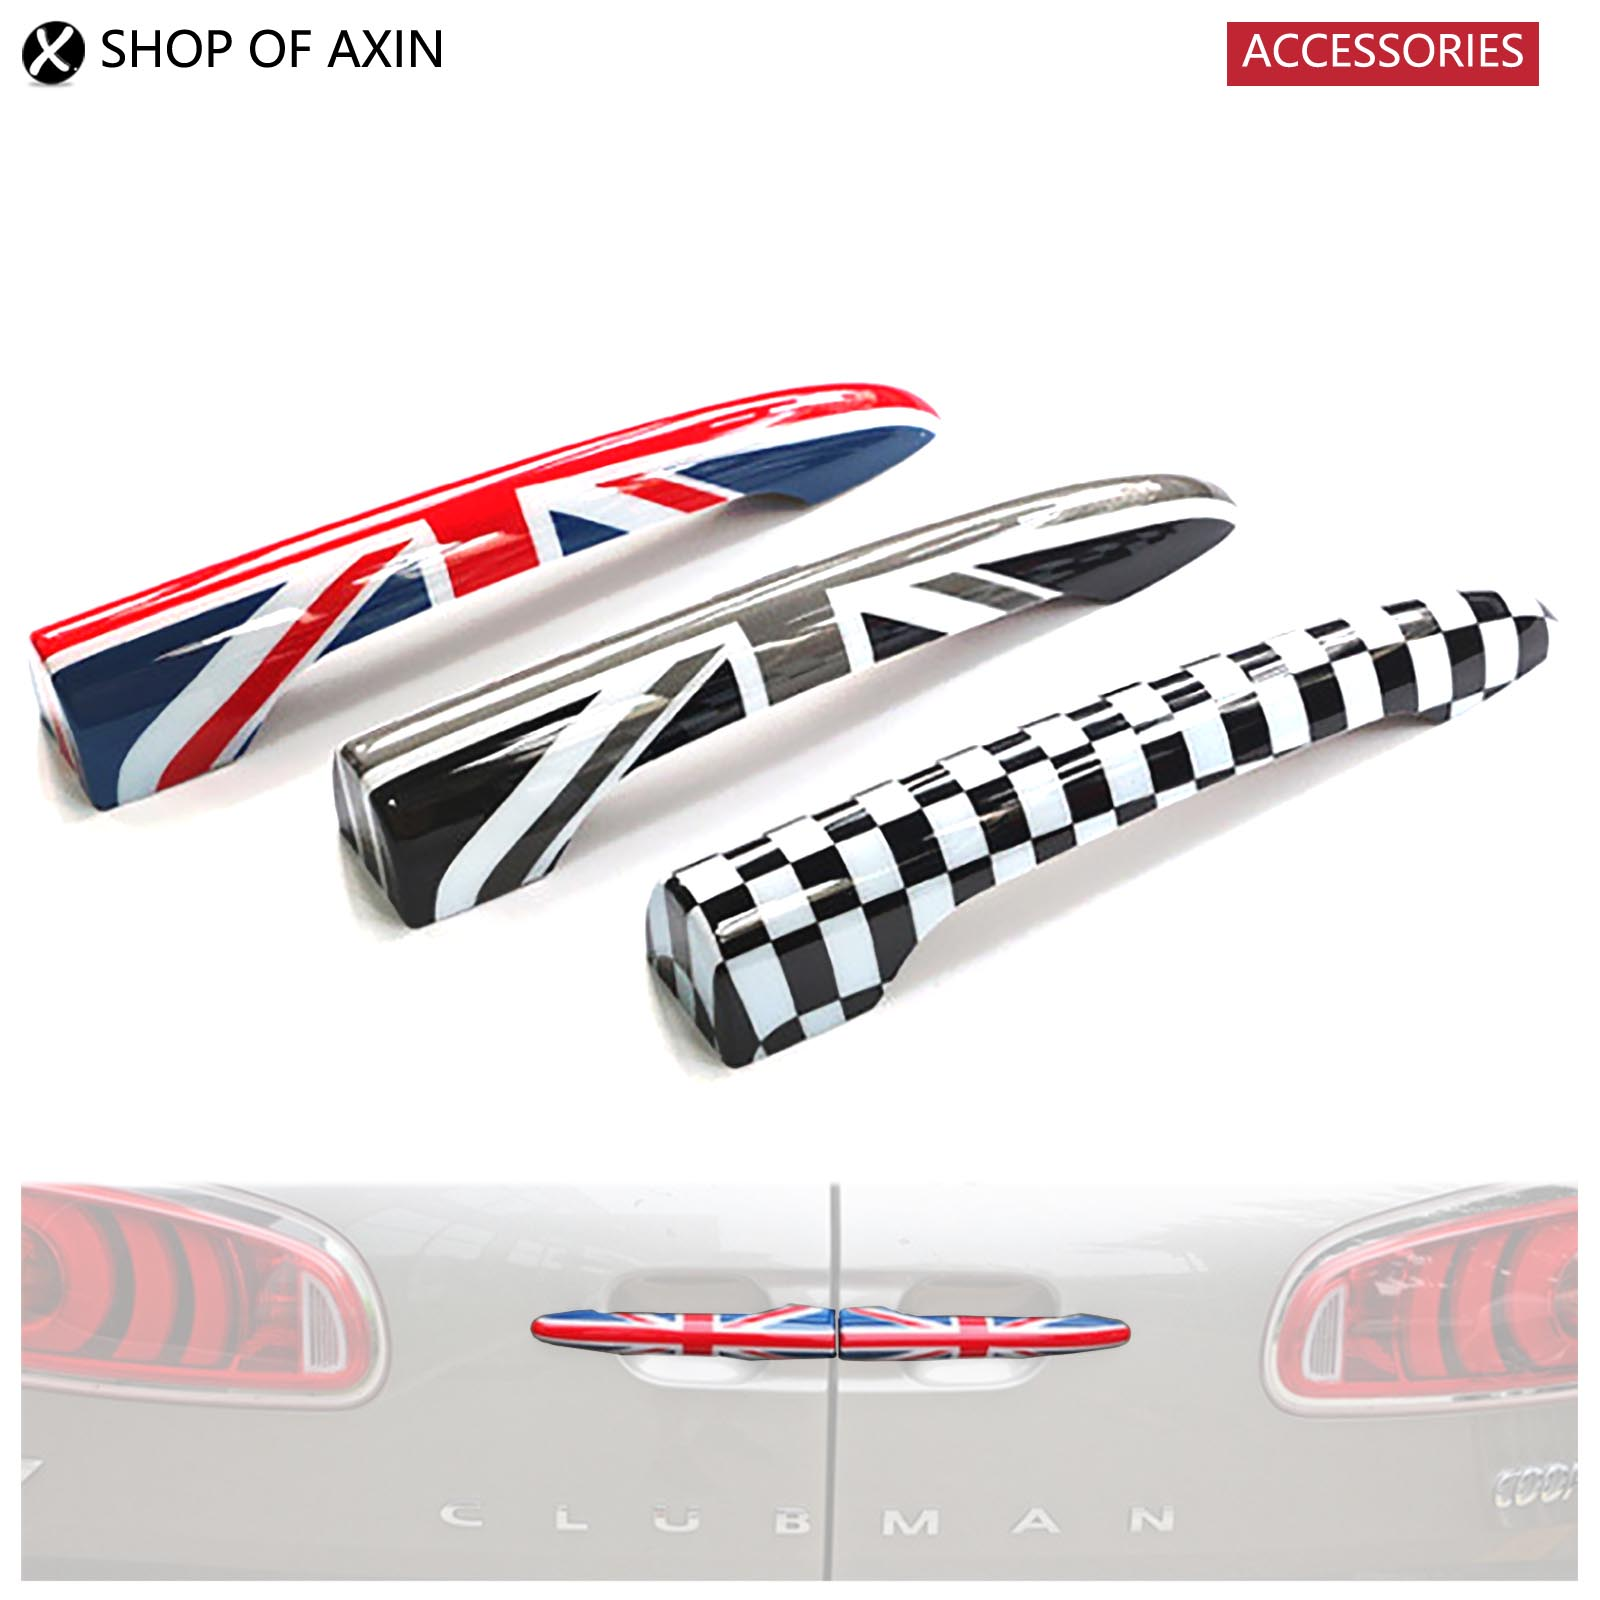 Mini Car Rear Door Handle Decoration Moulding Cover Smooth Surace (Union Jack, Grey UK, Checkered) For Mini Cooper Clubman F54 2pcs set union jack rear trunk door handle covers decoration sticker for mini cooper jcw f54 clubman car styling accessories